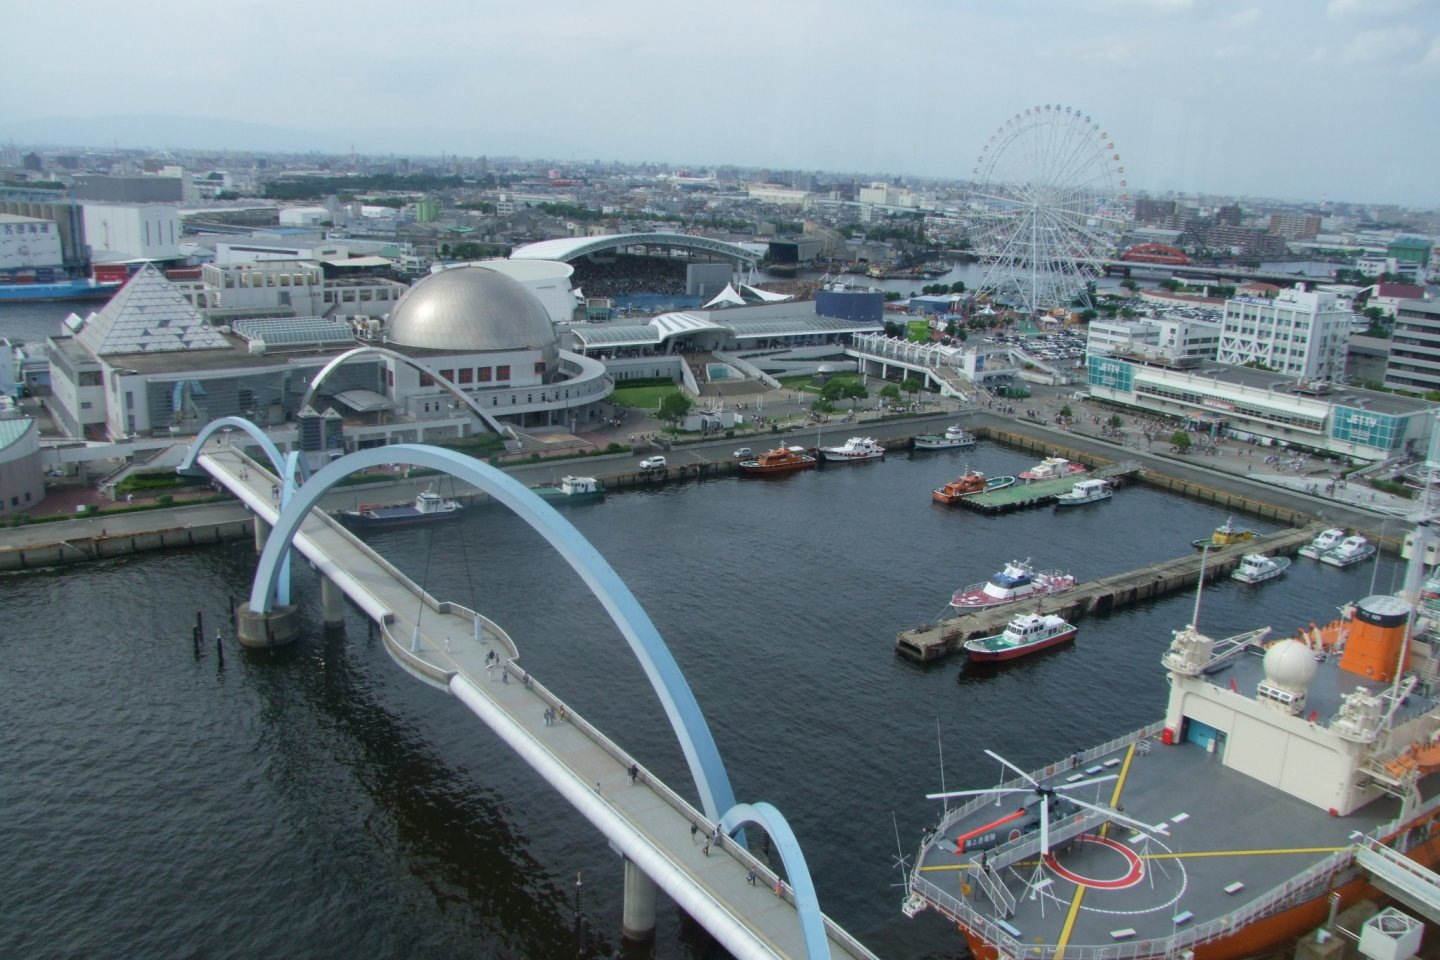 A view of the Nagoya Port district